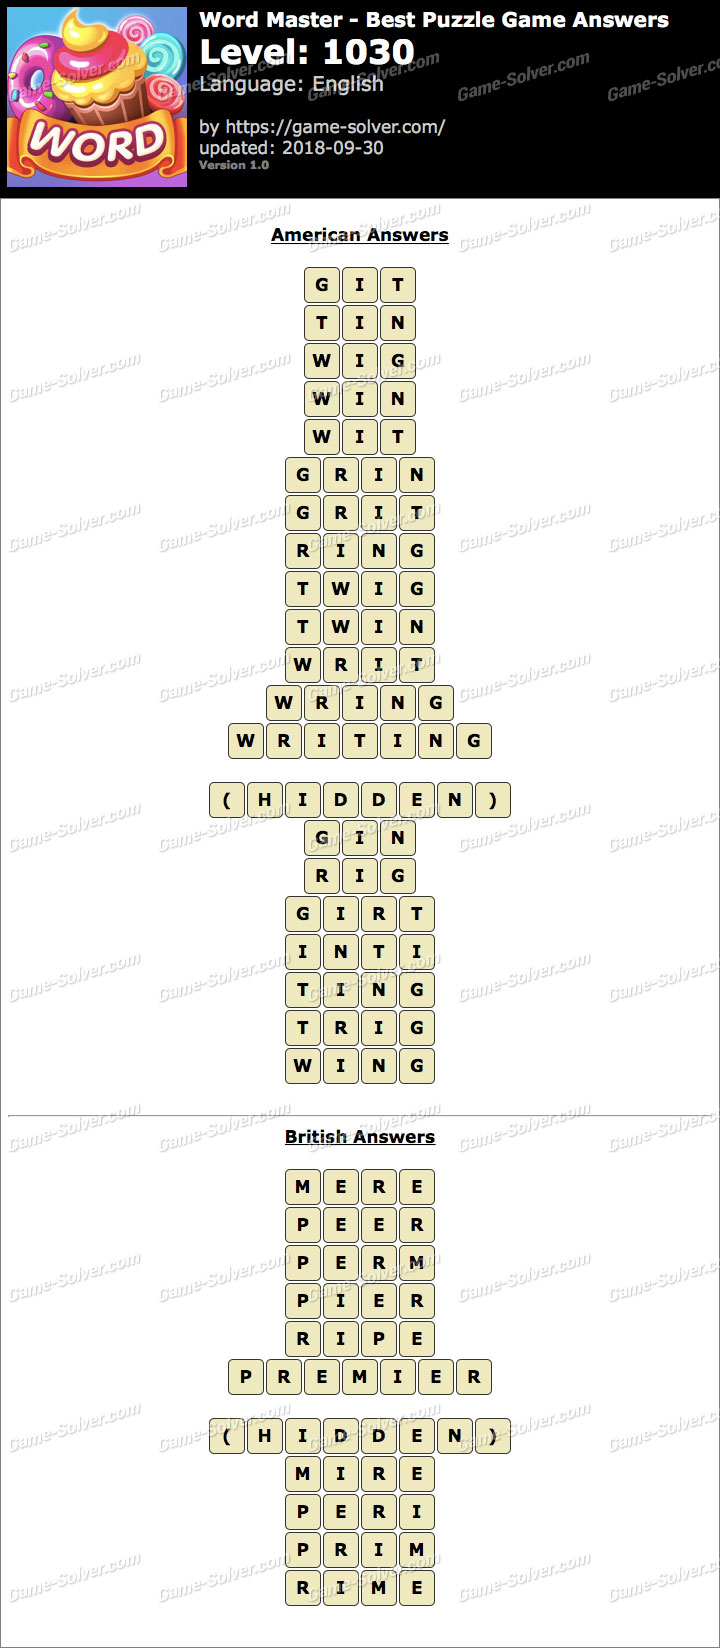 Word Master-Best Puzzle Game Level 1030 Answers